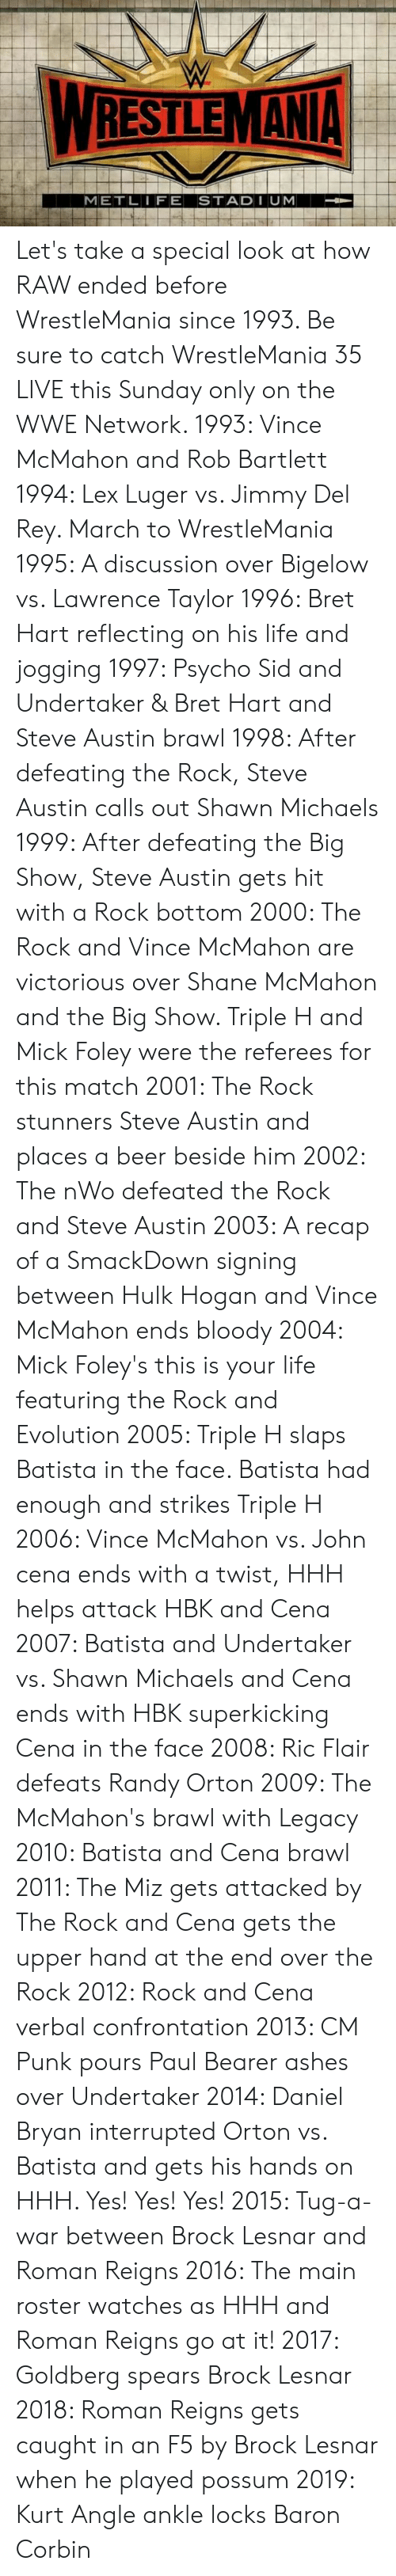 Beer, Hulk Hogan, and John Cena: RESTLEMANIA  MET LIFE STADIUM Let's take a special look at how RAW ended before WrestleMania since 1993. Be sure to catch WrestleMania 35 LIVE this Sunday only on the WWE Network.   1993: Vince McMahon and Rob Bartlett   1994: Lex Luger vs. Jimmy Del Rey. March to WrestleMania   1995: A discussion over Bigelow vs. Lawrence Taylor  1996: Bret Hart reflecting on his life and jogging   1997: Psycho Sid and Undertaker & Bret Hart and Steve Austin brawl   1998: After defeating the Rock, Steve Austin calls out Shawn Michaels   1999: After defeating the Big Show, Steve Austin gets hit with a Rock bottom   2000: The Rock and Vince McMahon are victorious over Shane McMahon and the Big Show. Triple H and Mick Foley were the referees for this match   2001: The Rock stunners Steve Austin and places a beer beside him   2002: The nWo defeated the Rock and Steve Austin   2003: A recap of a SmackDown signing between Hulk Hogan and Vince McMahon ends bloody  2004: Mick Foley's this is your life featuring the Rock and Evolution   2005: Triple H slaps Batista in the face. Batista had enough and strikes Triple H   2006: Vince McMahon vs. John cena ends with a twist,  HHH helps attack HBK and Cena   2007: Batista and Undertaker vs. Shawn Michaels and Cena ends with HBK superkicking Cena in the face   2008: Ric Flair defeats Randy Orton   2009: The McMahon's brawl with Legacy   2010: Batista and Cena brawl  2011: The Miz gets attacked by The Rock and Cena gets the upper hand at the end over the Rock  2012: Rock and Cena verbal confrontation   2013: CM Punk pours Paul Bearer ashes over Undertaker   2014: Daniel Bryan interrupted Orton vs. Batista and gets his hands on HHH. Yes! Yes! Yes!   2015: Tug-a-war between Brock Lesnar and Roman Reigns   2016: The main roster watches as HHH and Roman Reigns go at it!   2017: Goldberg spears Brock Lesnar   2018: Roman Reigns gets caught in an F5 by Brock Lesnar when he played possum  2019: Kurt Angle ankle locks Baron Corbin